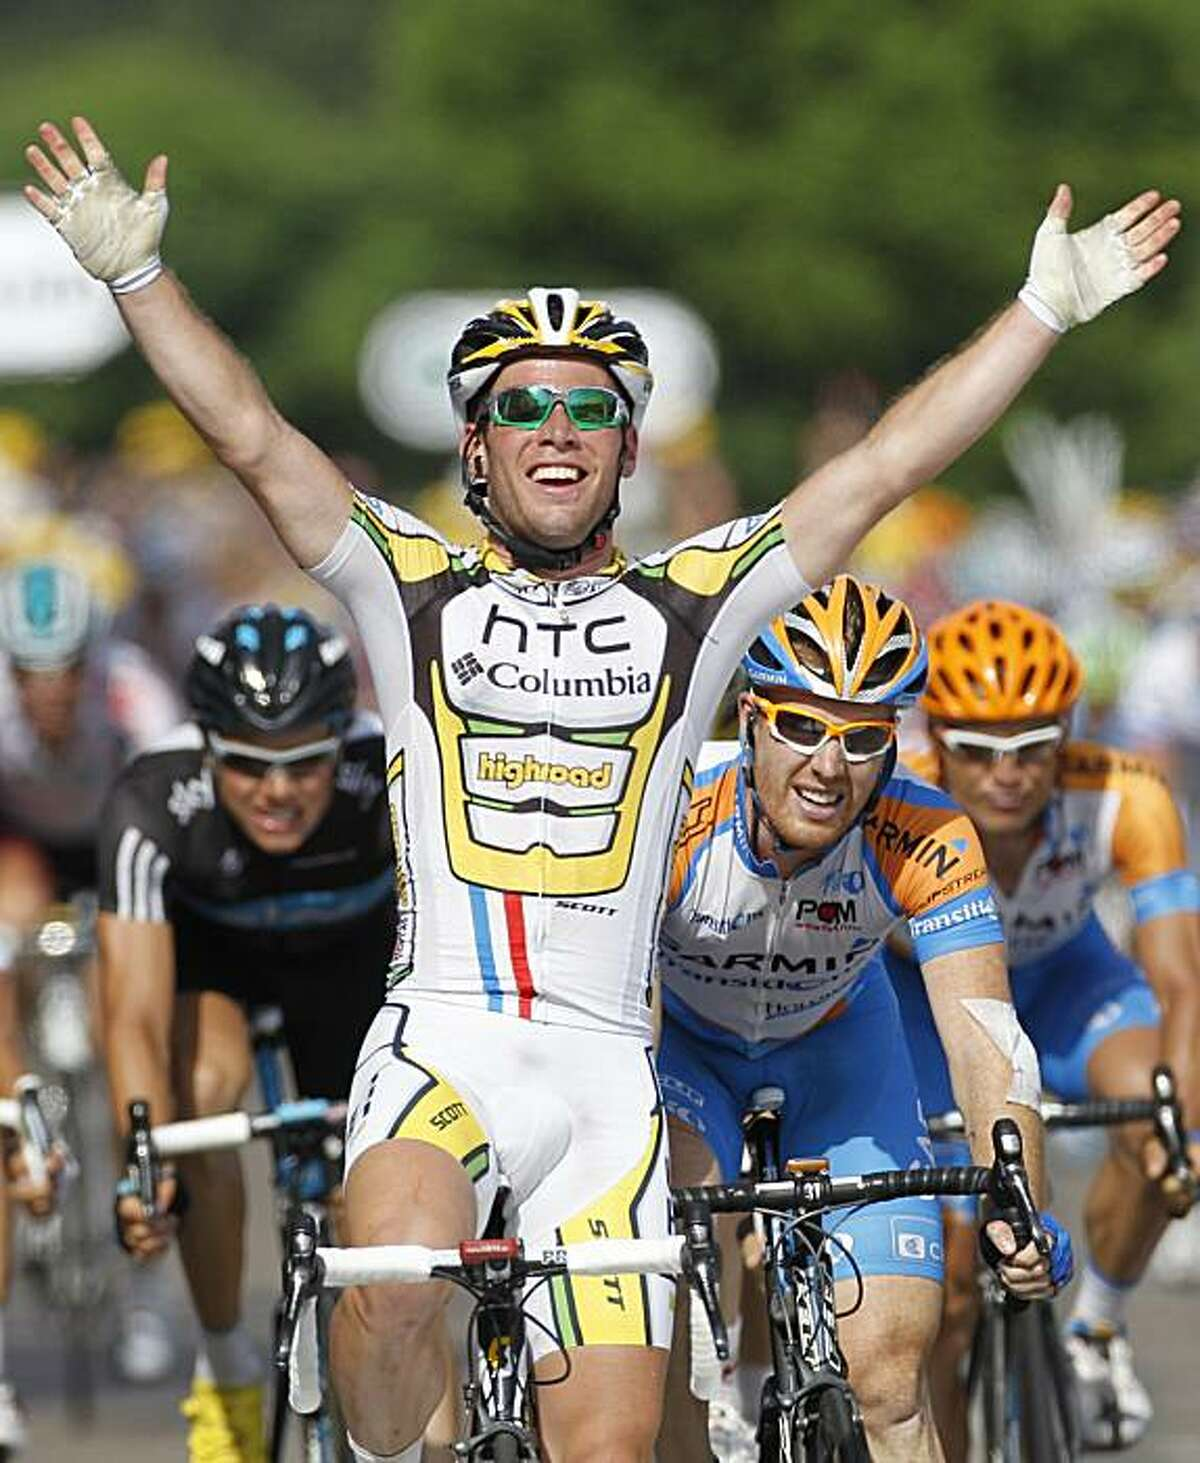 Mark Cavendish of Britain, center, crosses the finish line to win the sixth stage of the Tour de France cycling race over 227.5 kilometers (141.4 miles) with start in Montargis and finish in Gueugnon, France, Friday, July 9, 2010, ahead of Tyler Farrar of the US, right, and Edvald Boassson Hagen of Norway, left.